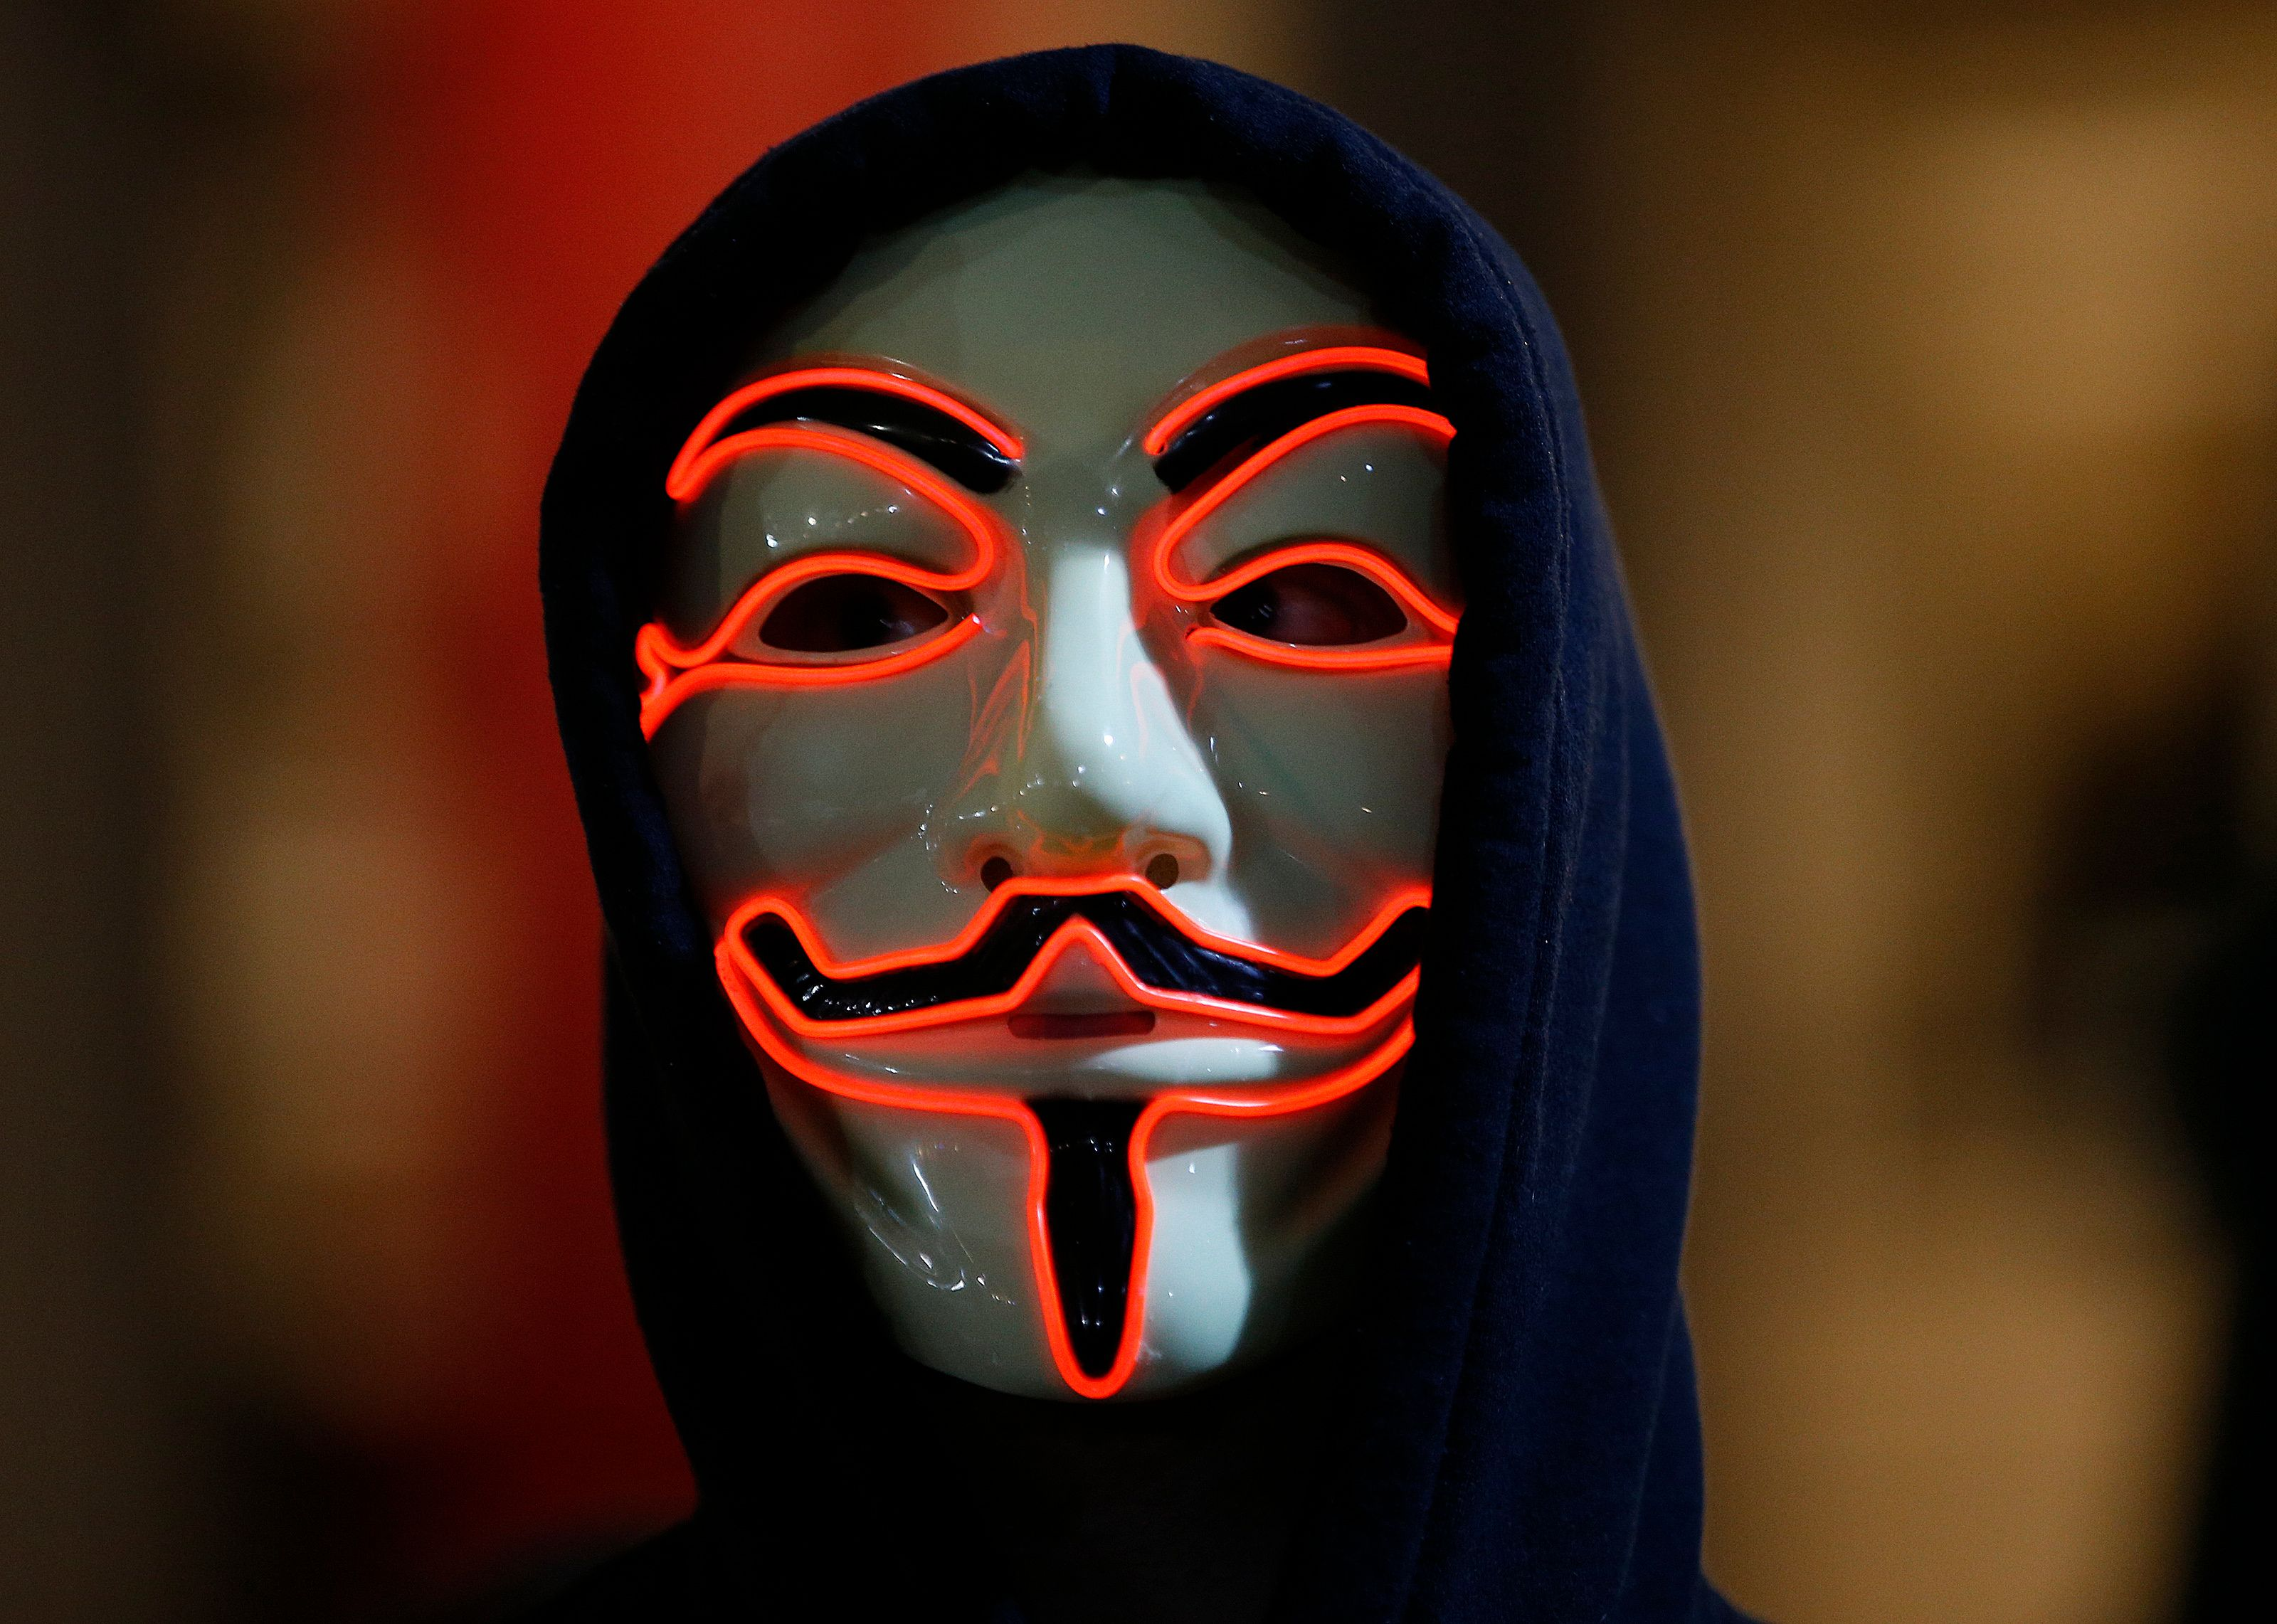 A supporter of the activist group Anonymous wears a mask during a protest in London, Britain November 5, 2015. REUTERS/Peter Nicholls